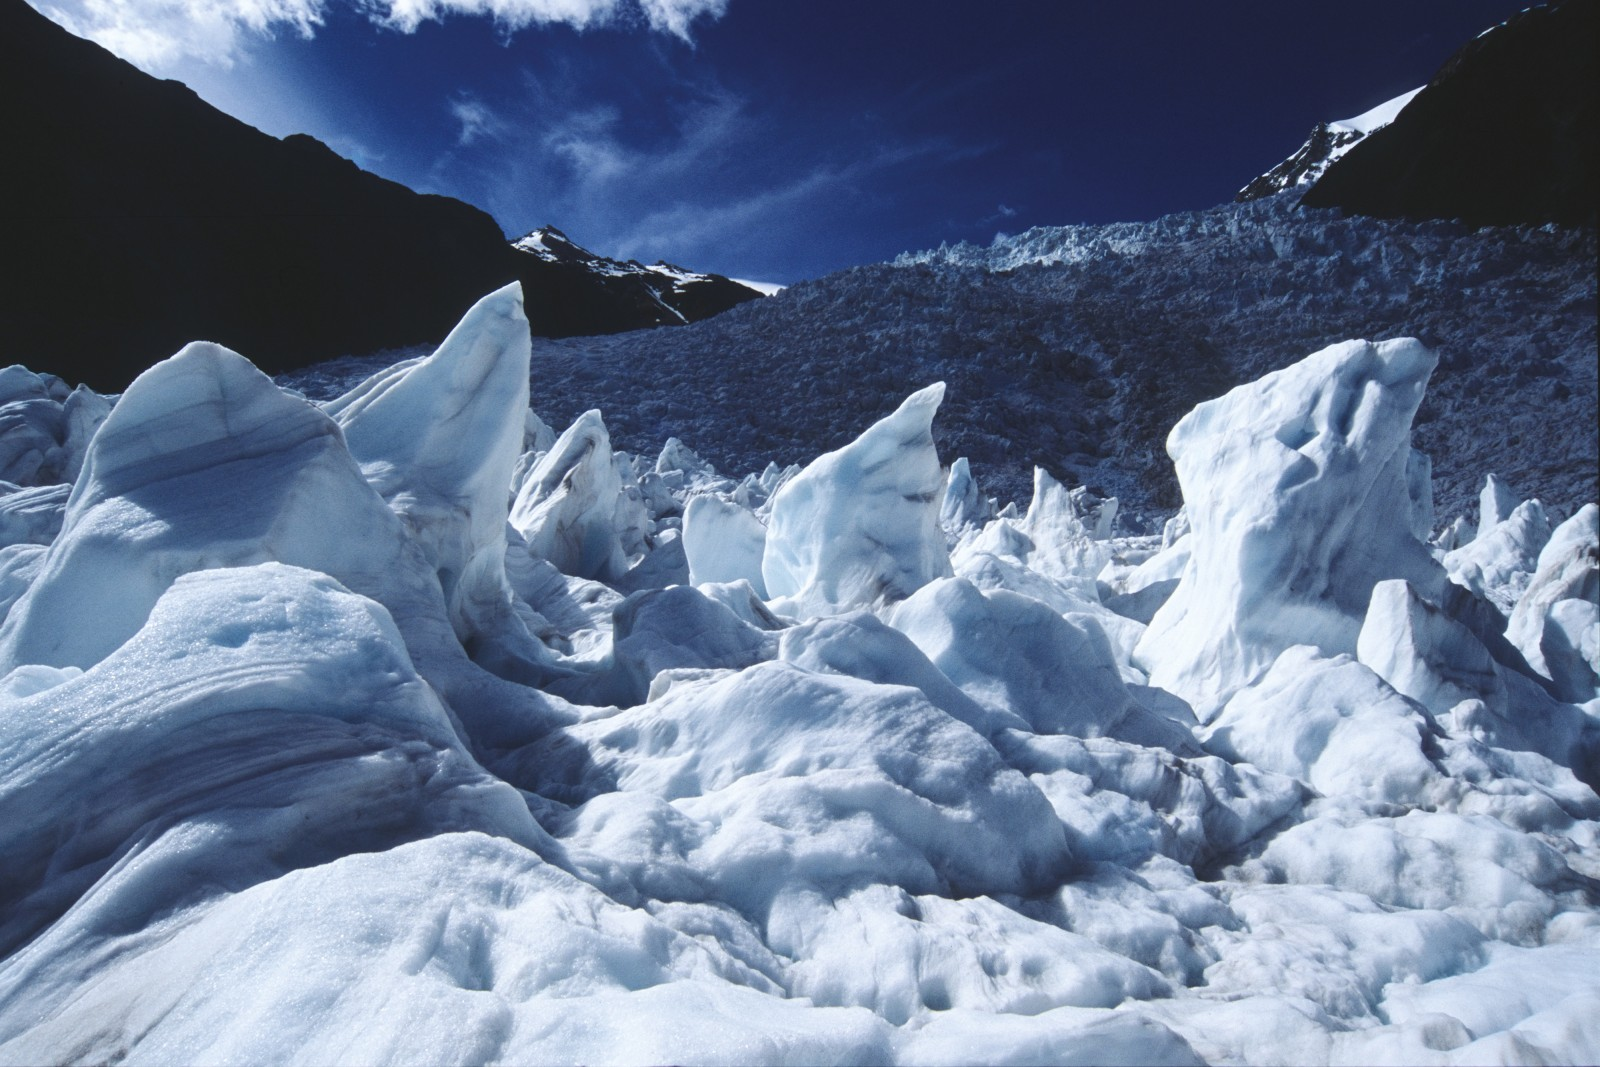 The elements have sculpted these pinnacles—seen against the backdrop of the main icefall—from large blocks of ice.